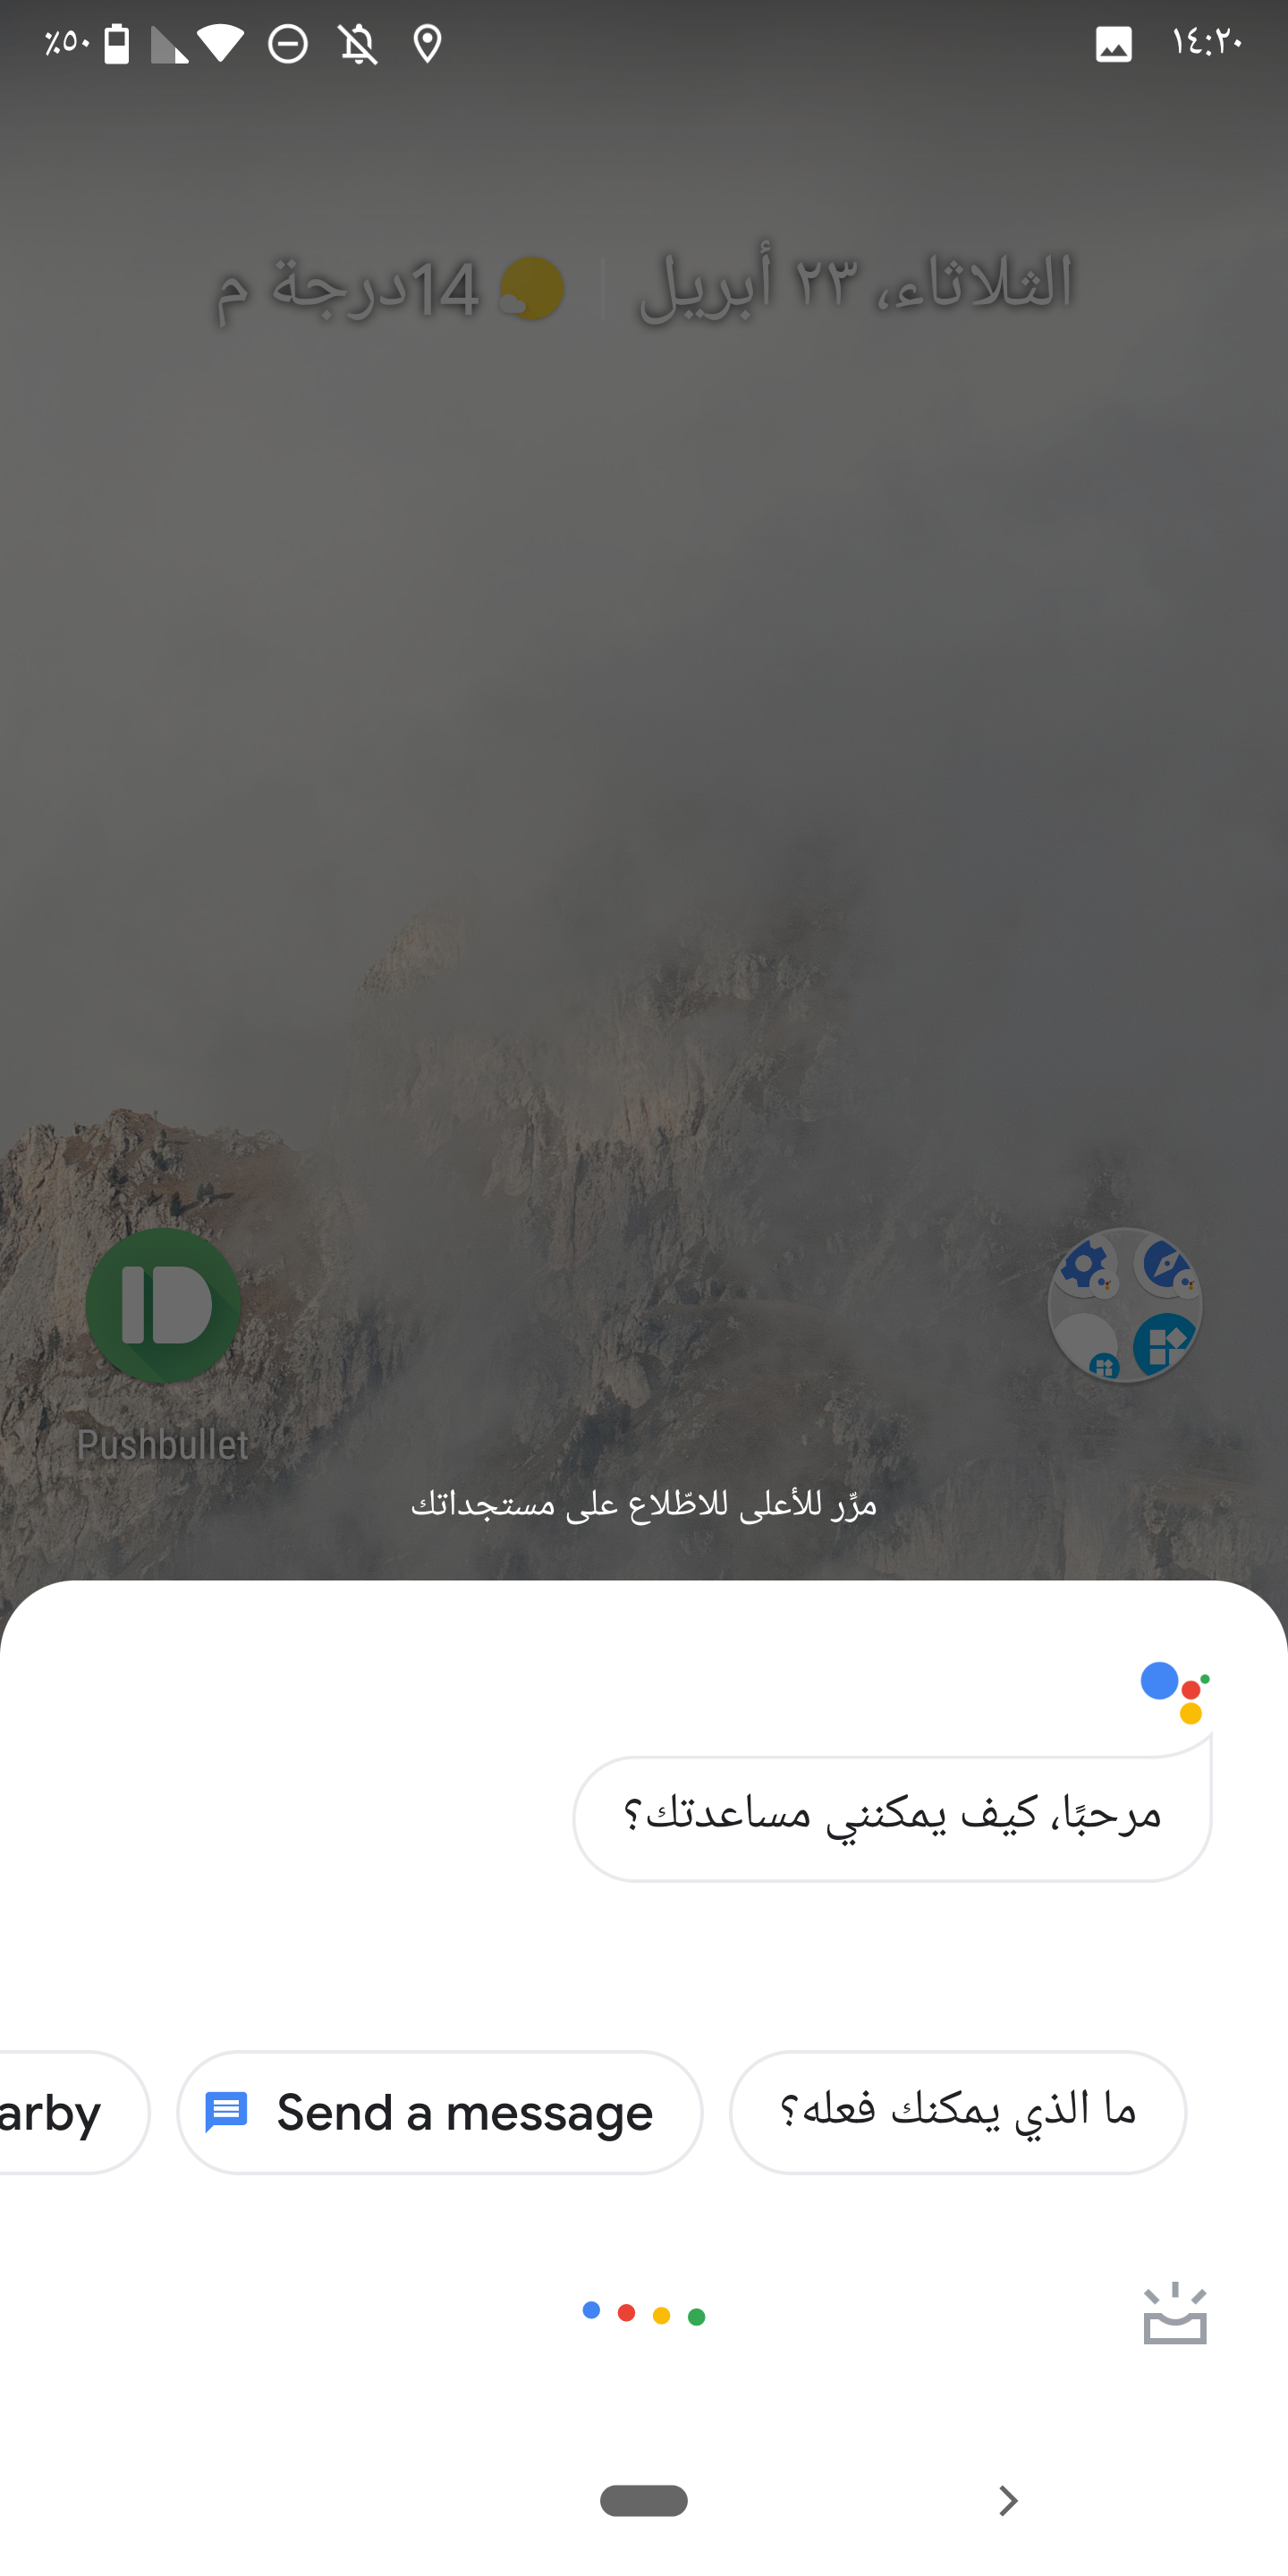 Arabic support comes to Google Assistant on phones